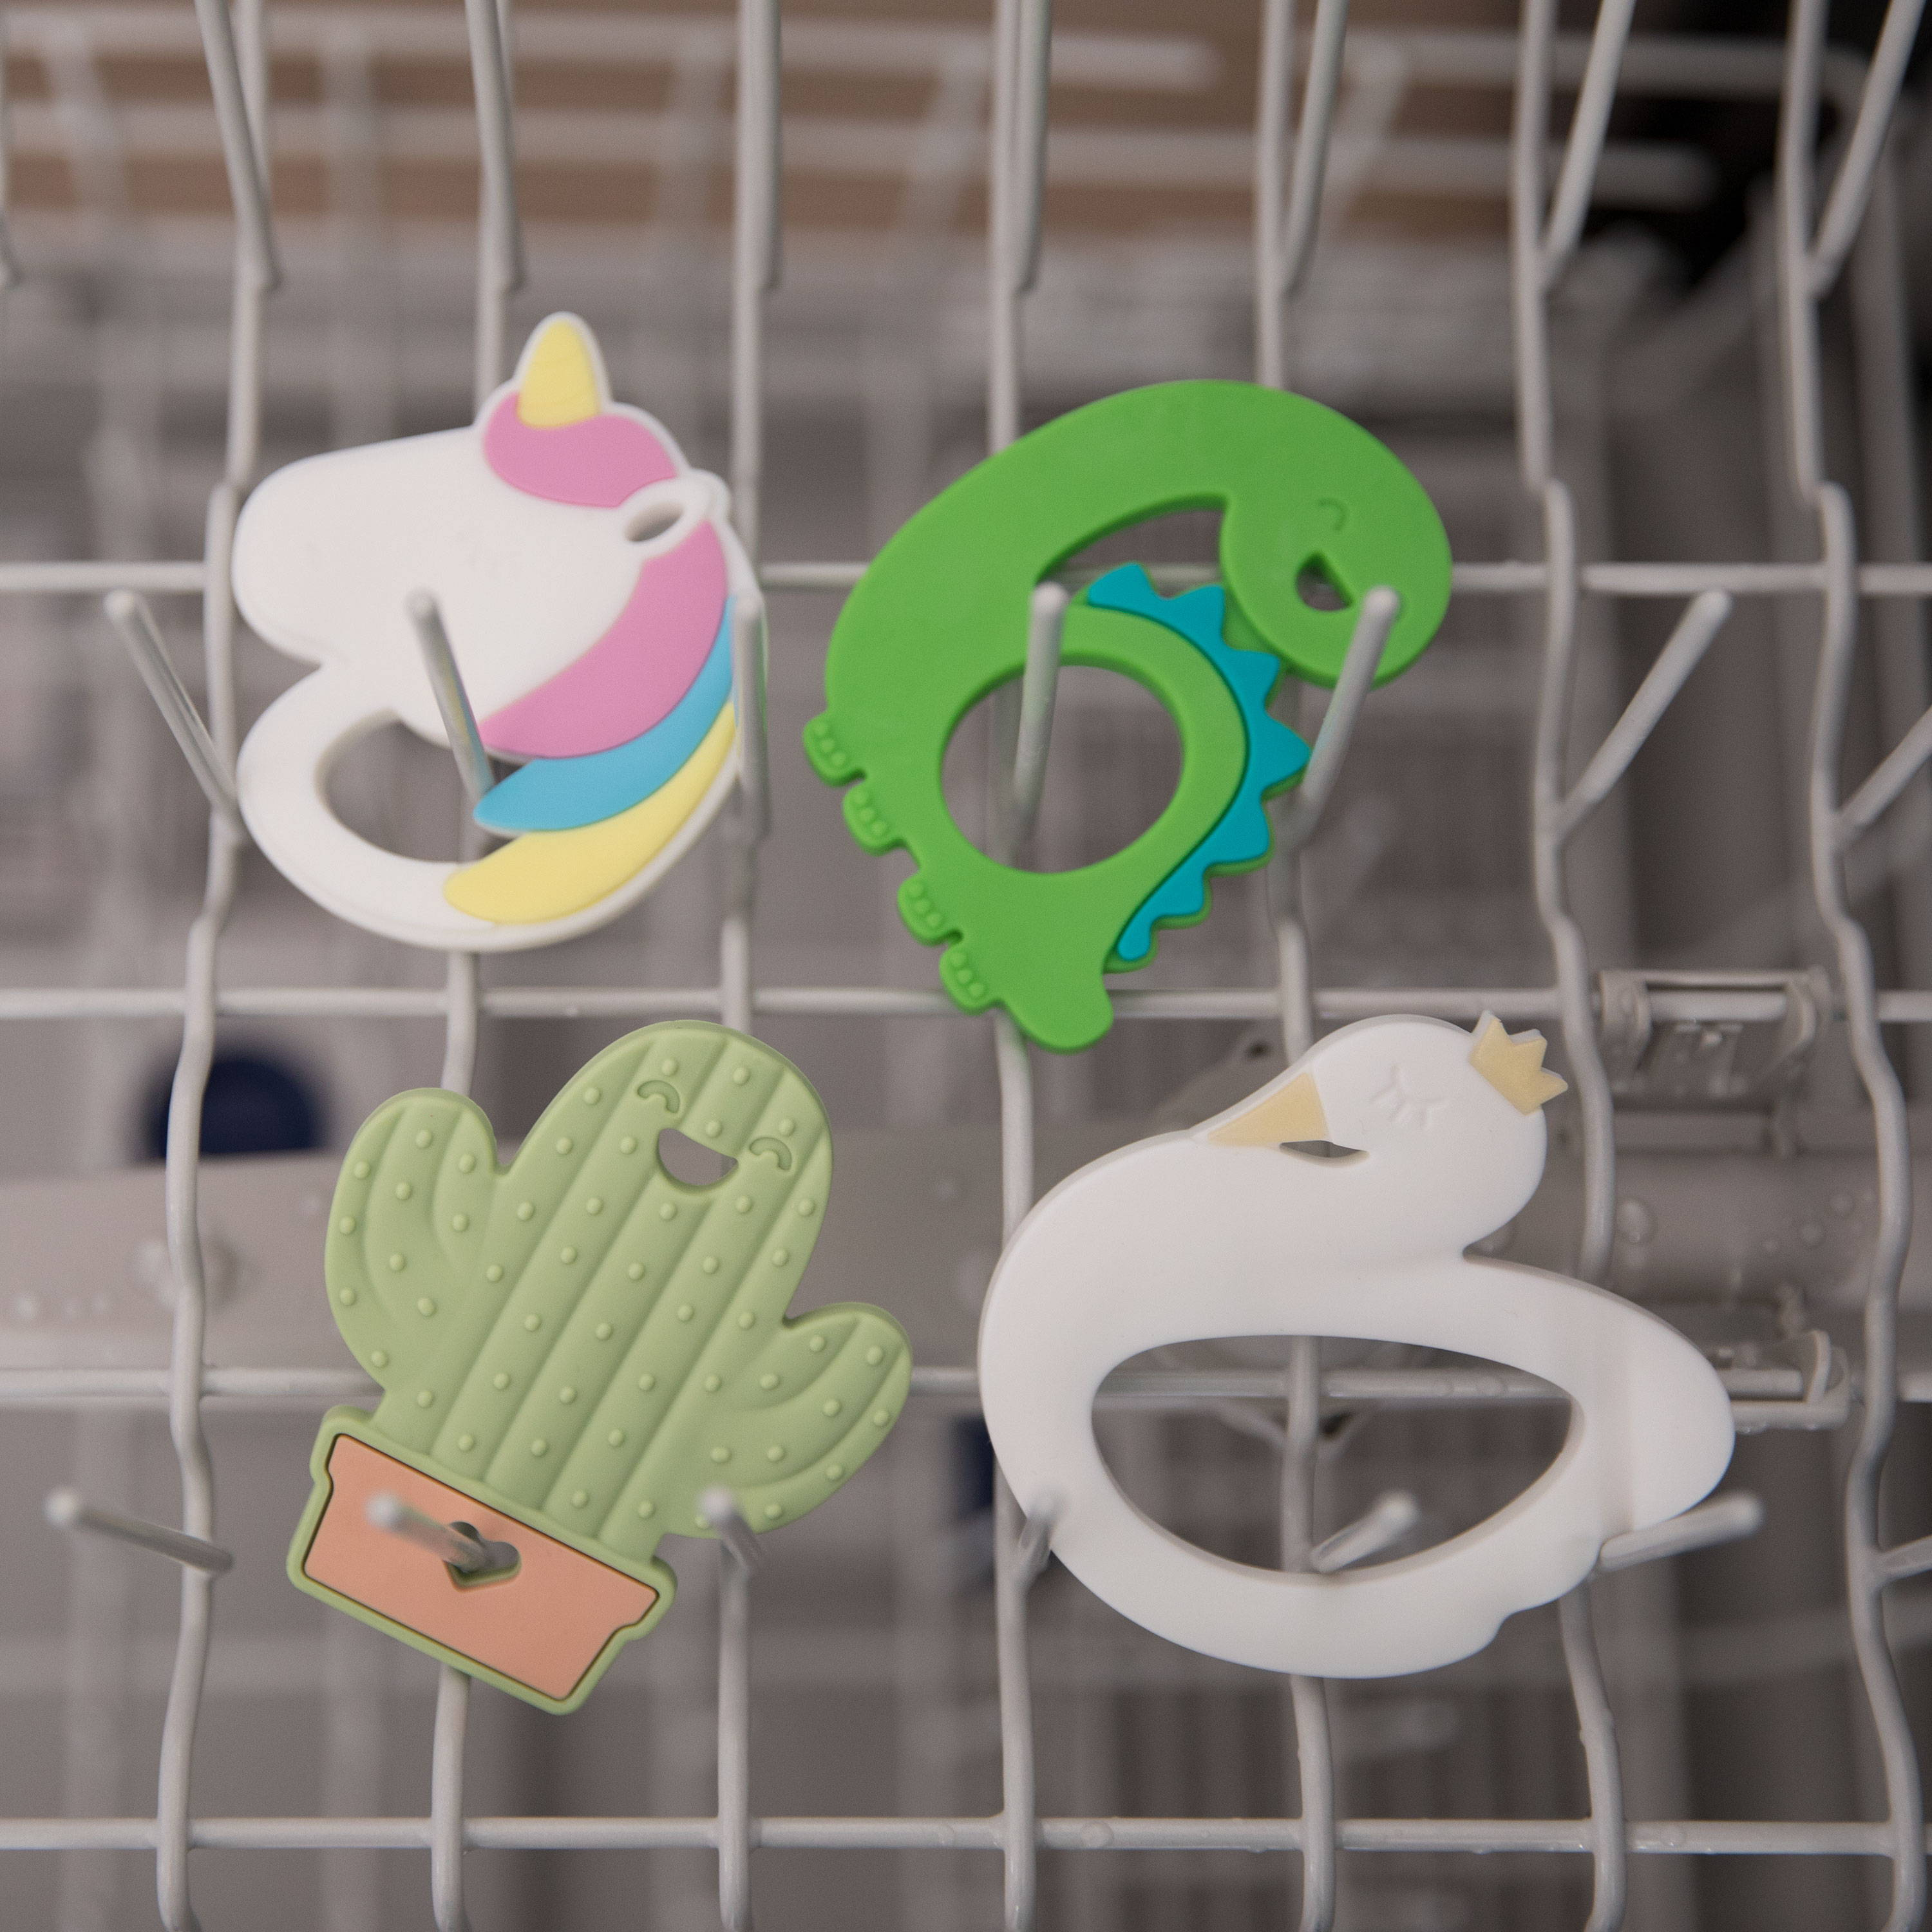 cleaning and sanitizing baby teethers in dishwasher